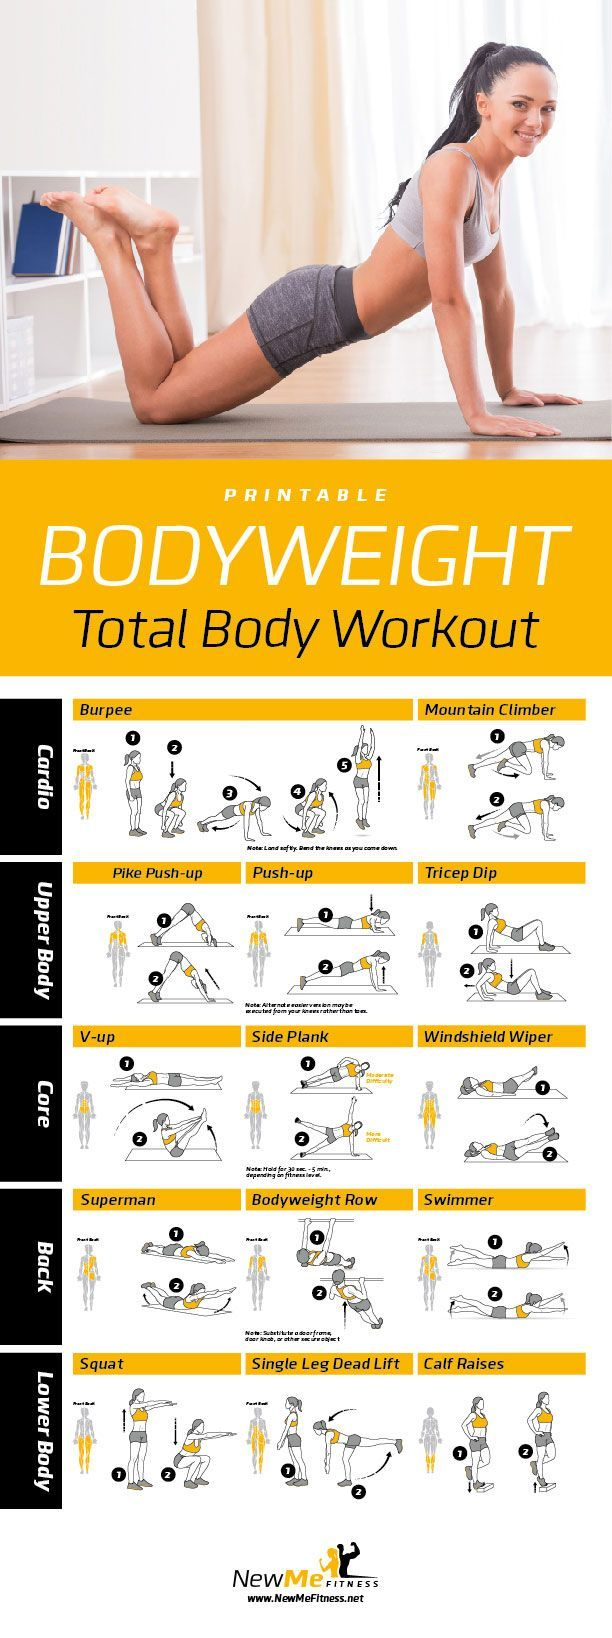 Printable Core Stability Ball Workout Poster  Workouts With